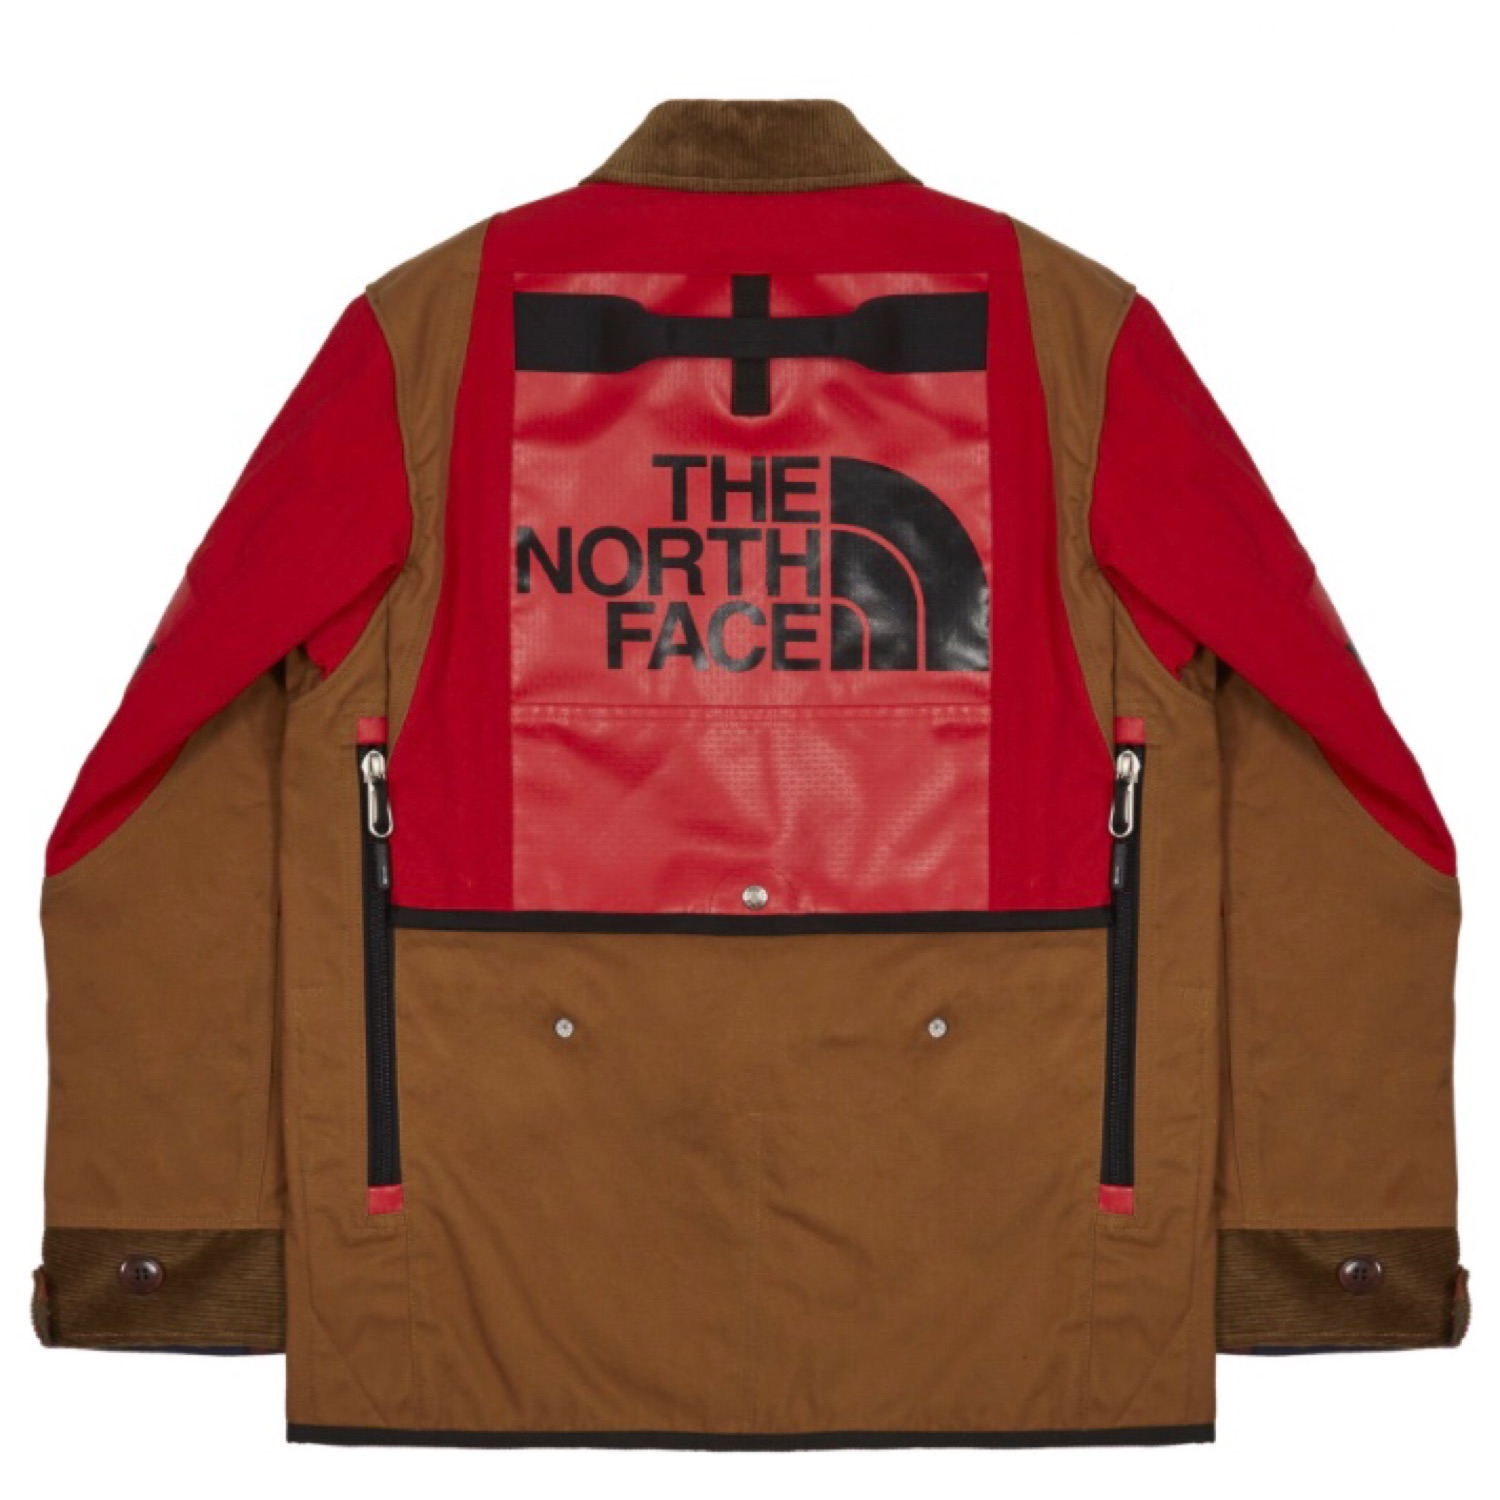 088a42ec2 Junya Watanabe X The North Face Remake Duffel Coat